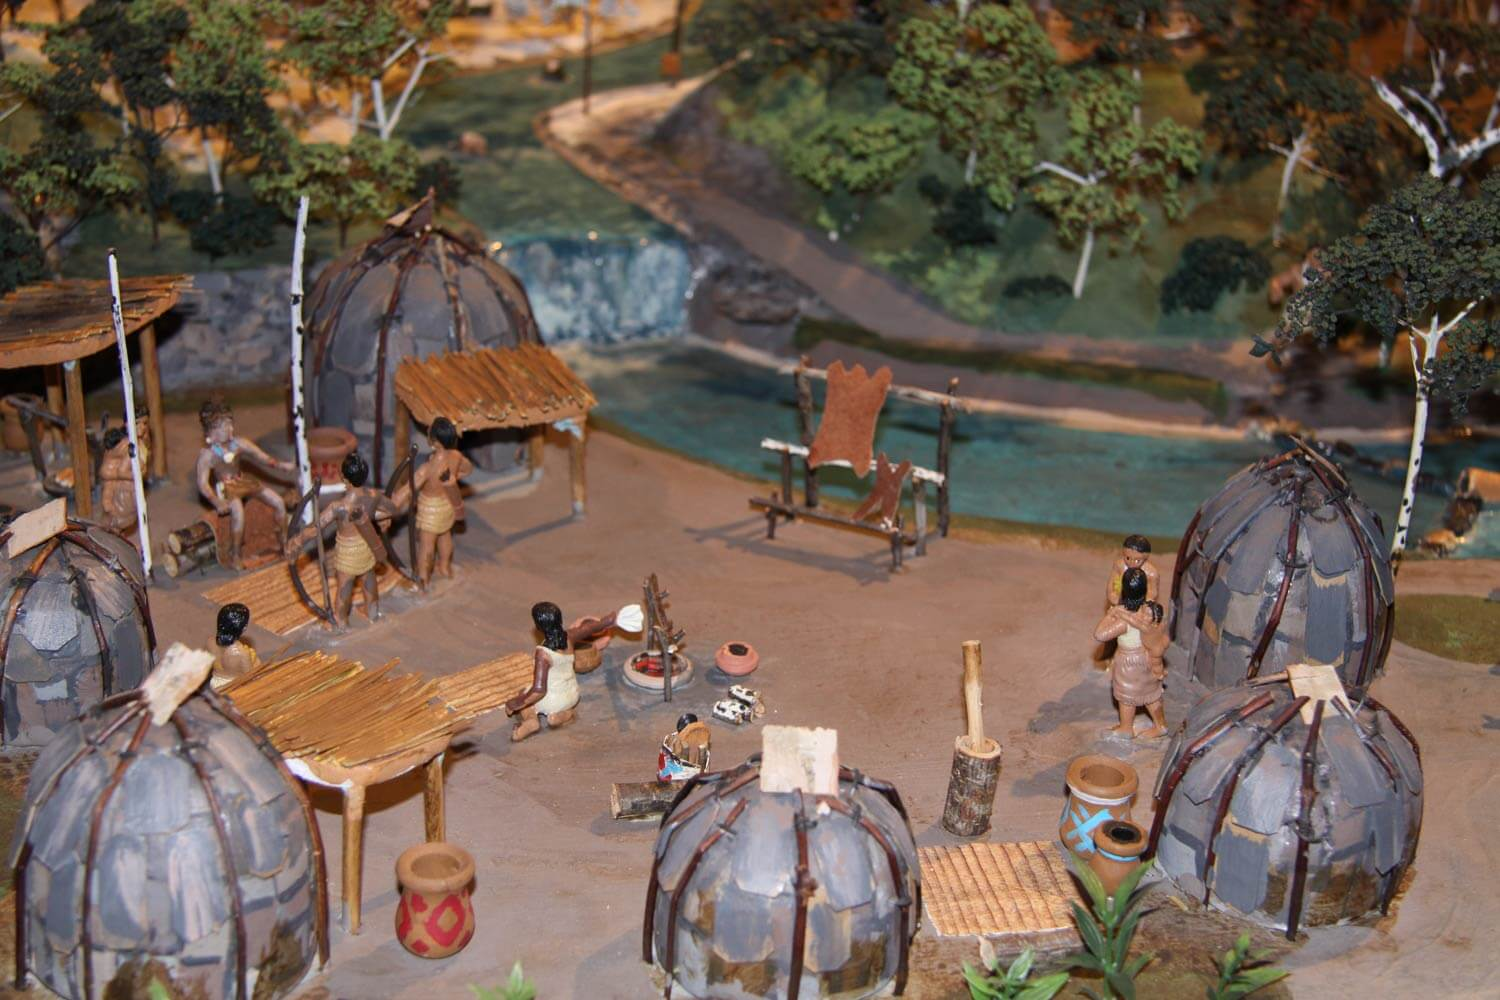 CPN Cultural Heritage Center Village Diorama Image